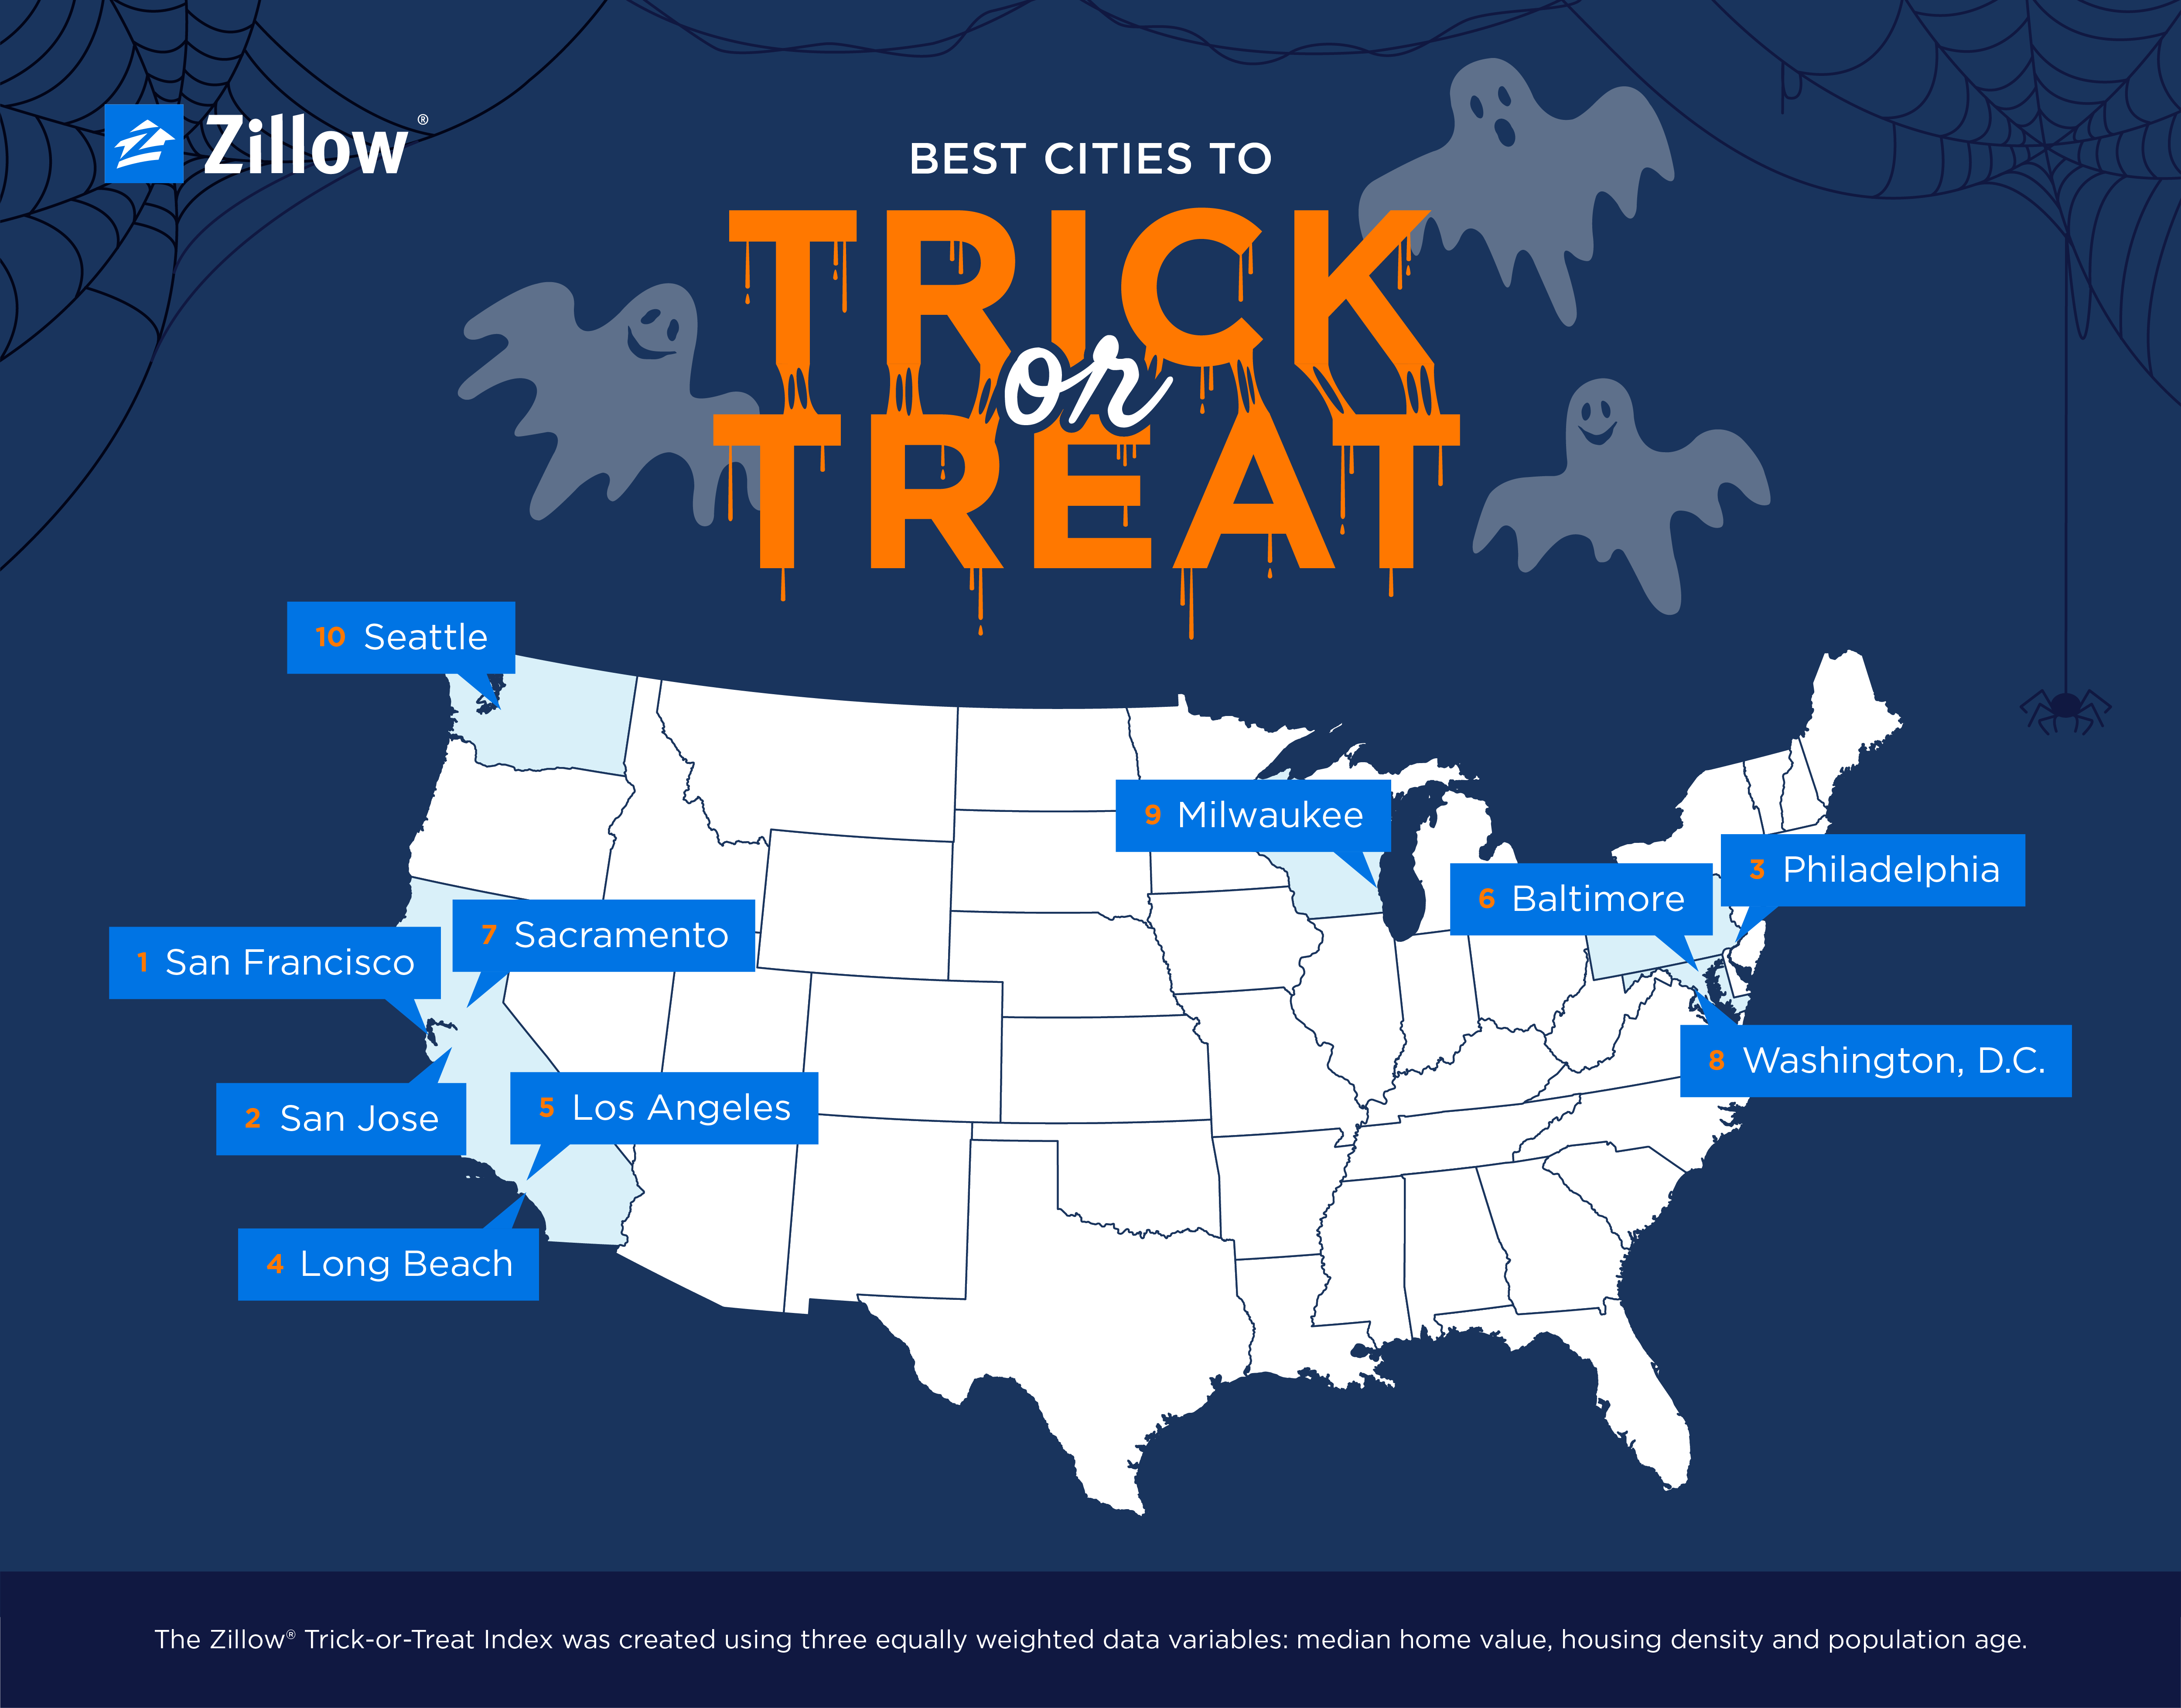 Zillow Home Design Style Quiz 20 Best Cities And Neighborhoods For Trick Or Treating